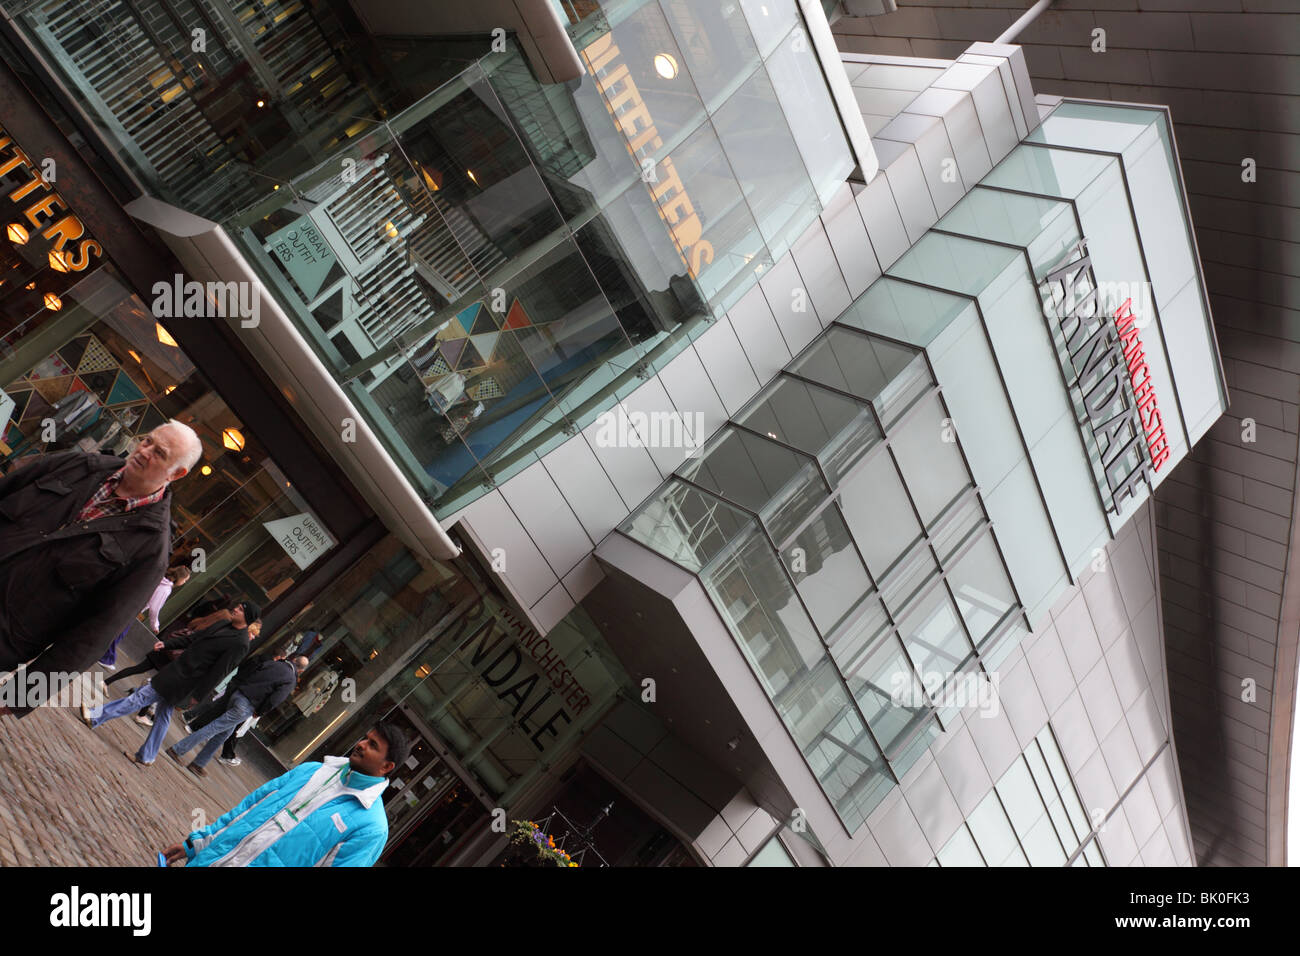 Manchester`s Arndale Se commerce field.hopping Center,a hive of activity in th - Stock Image